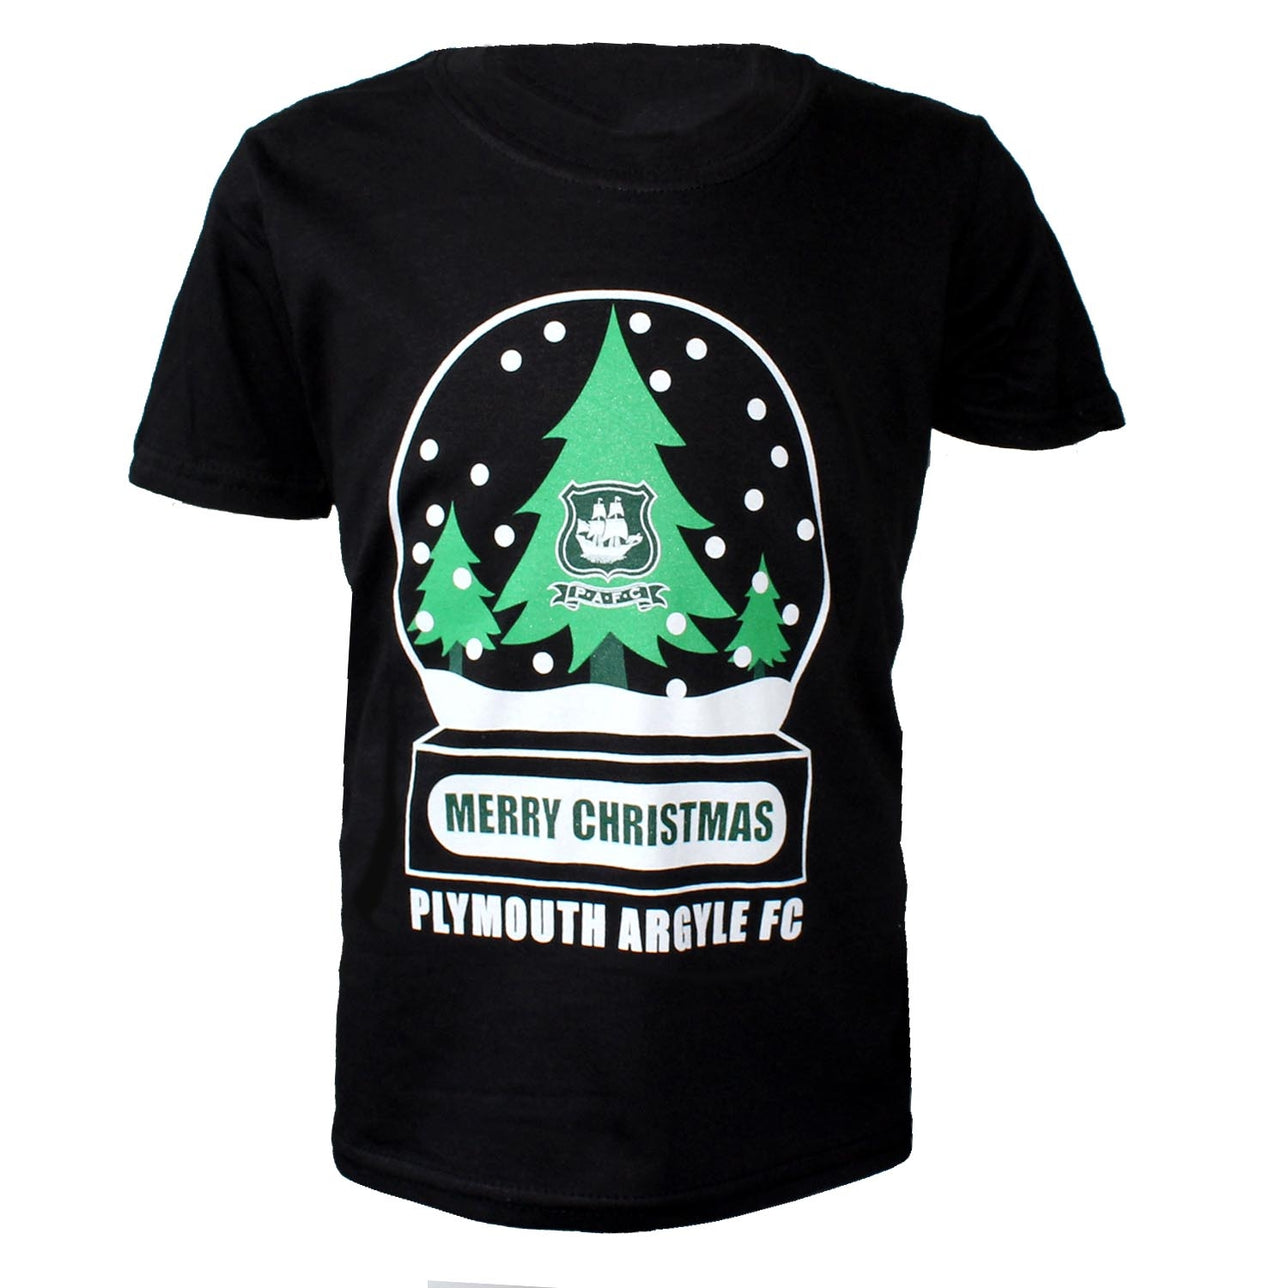 Junior Christmas Tee Black